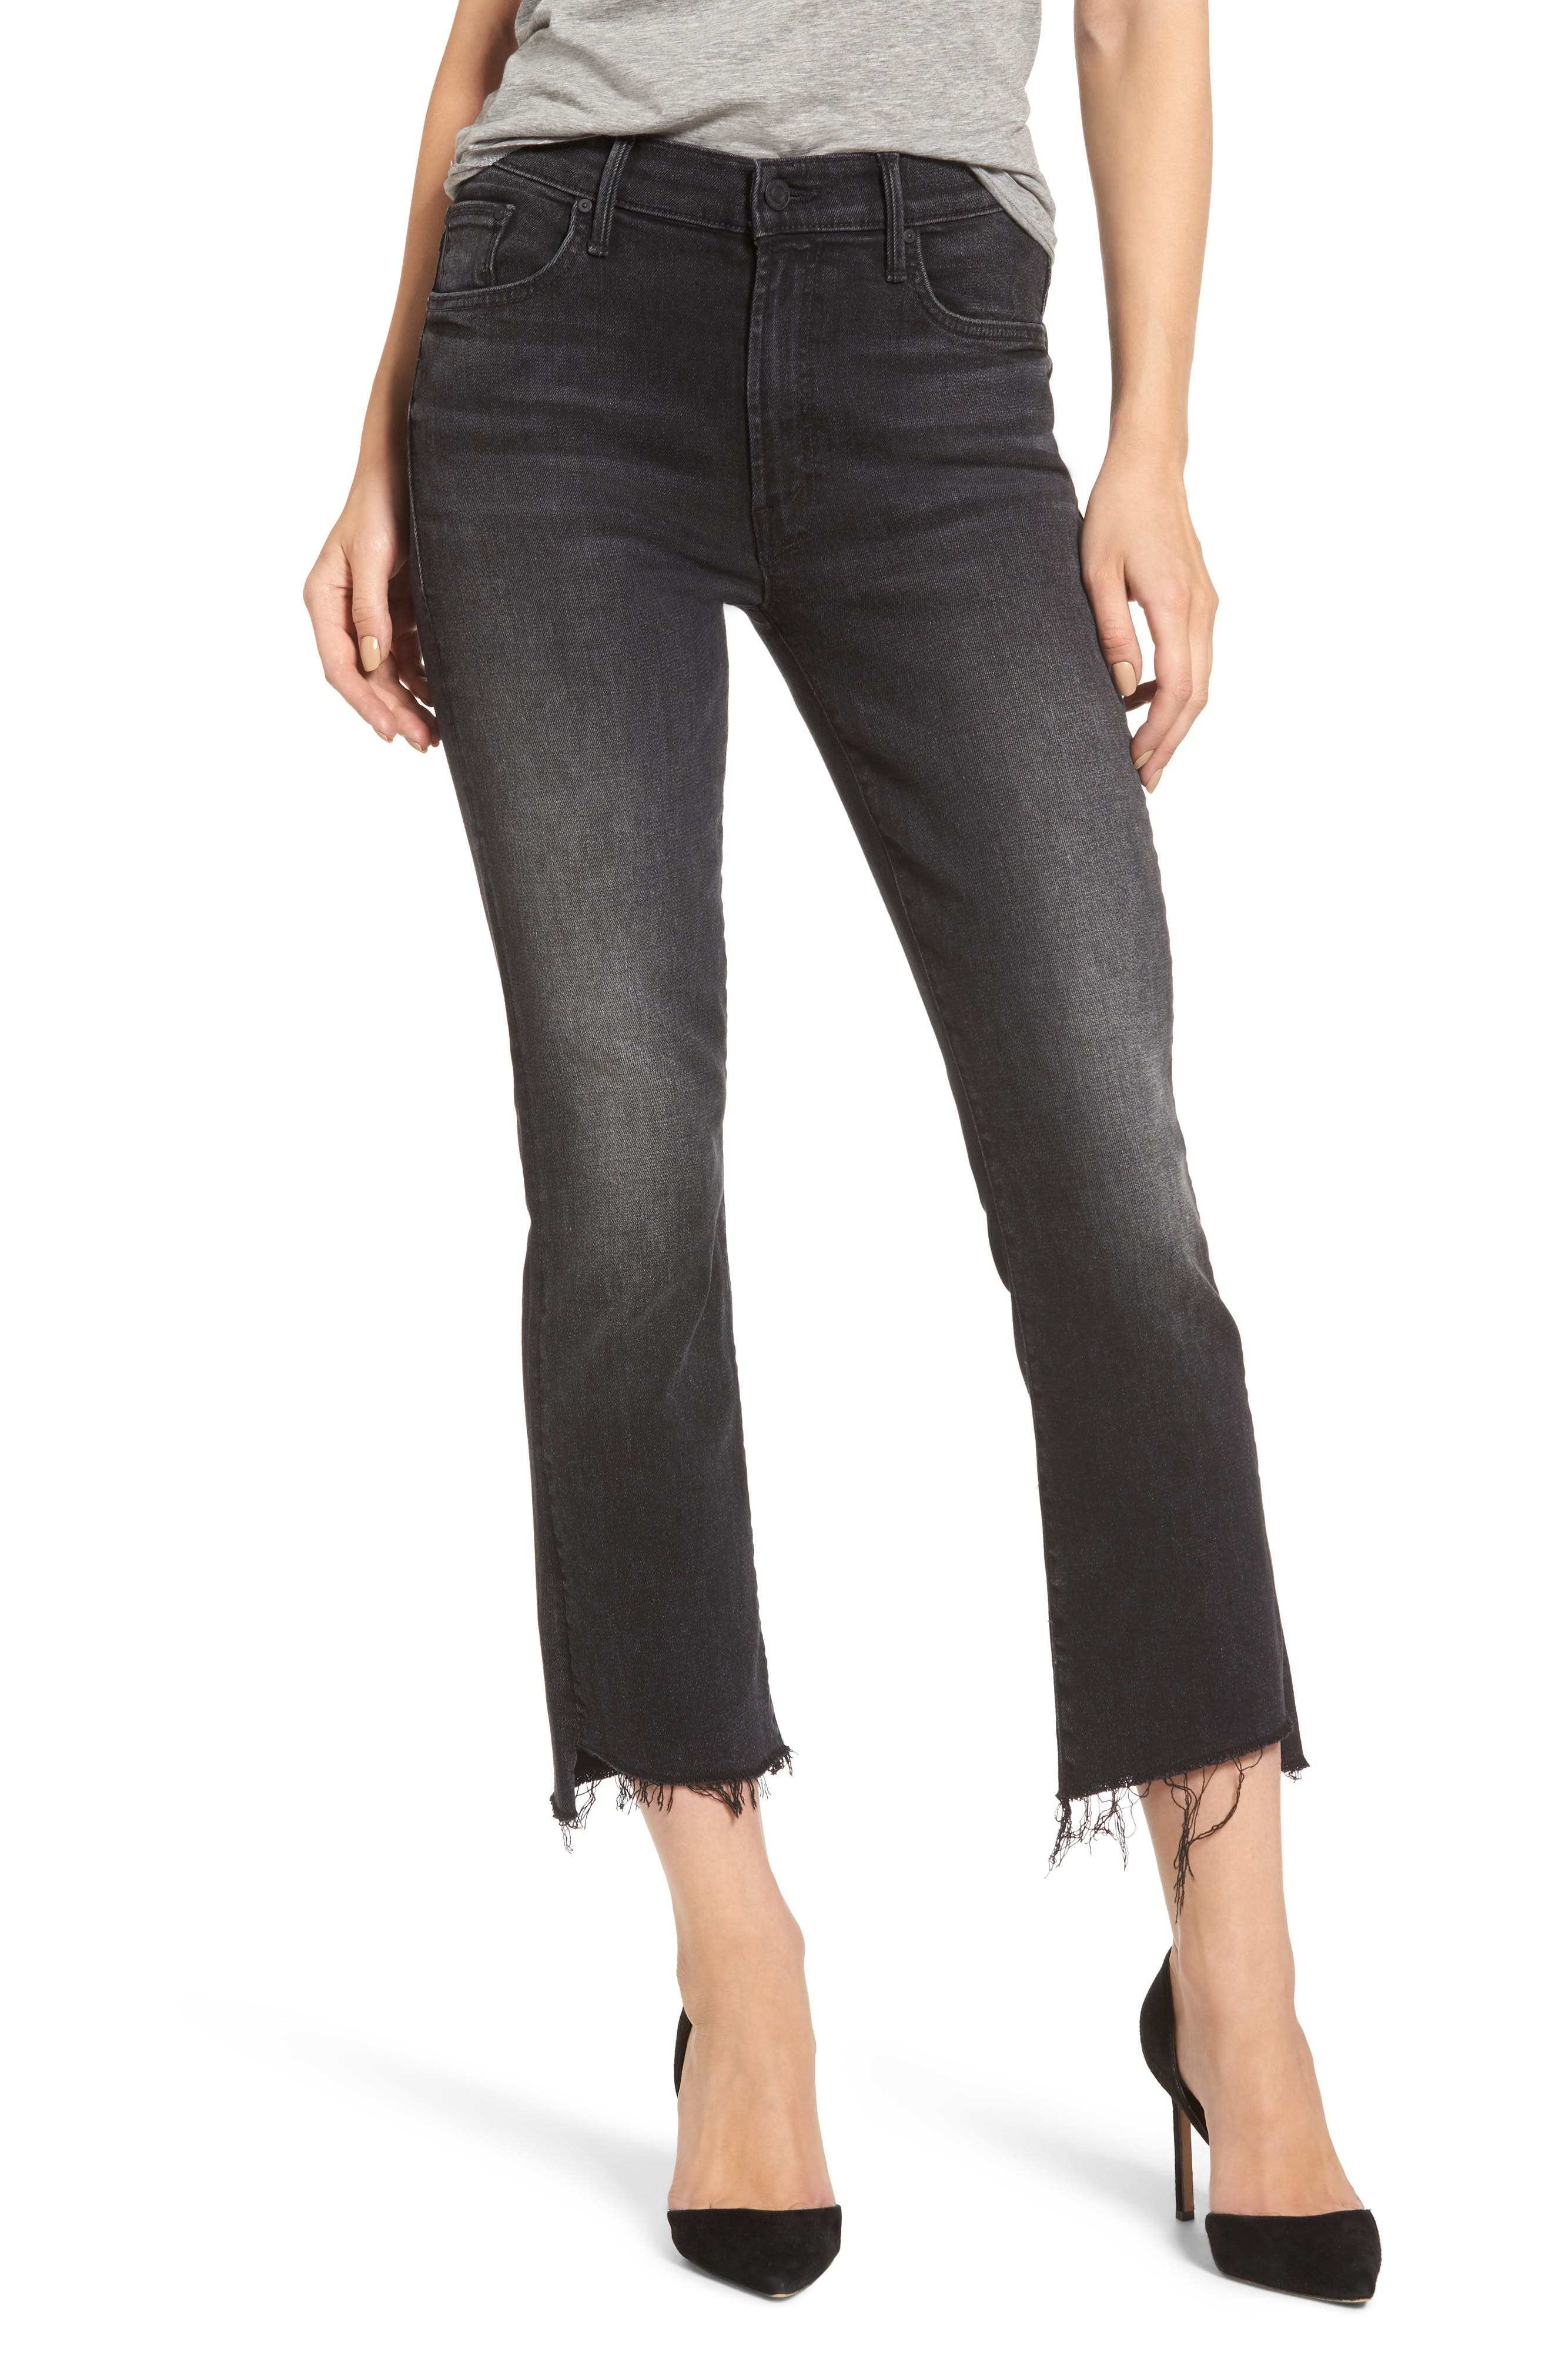 Alternate Image 1 Selected - MOTHER The Insider High Waist Step Hem Crop Bootcut Jeans (Night Hawk)